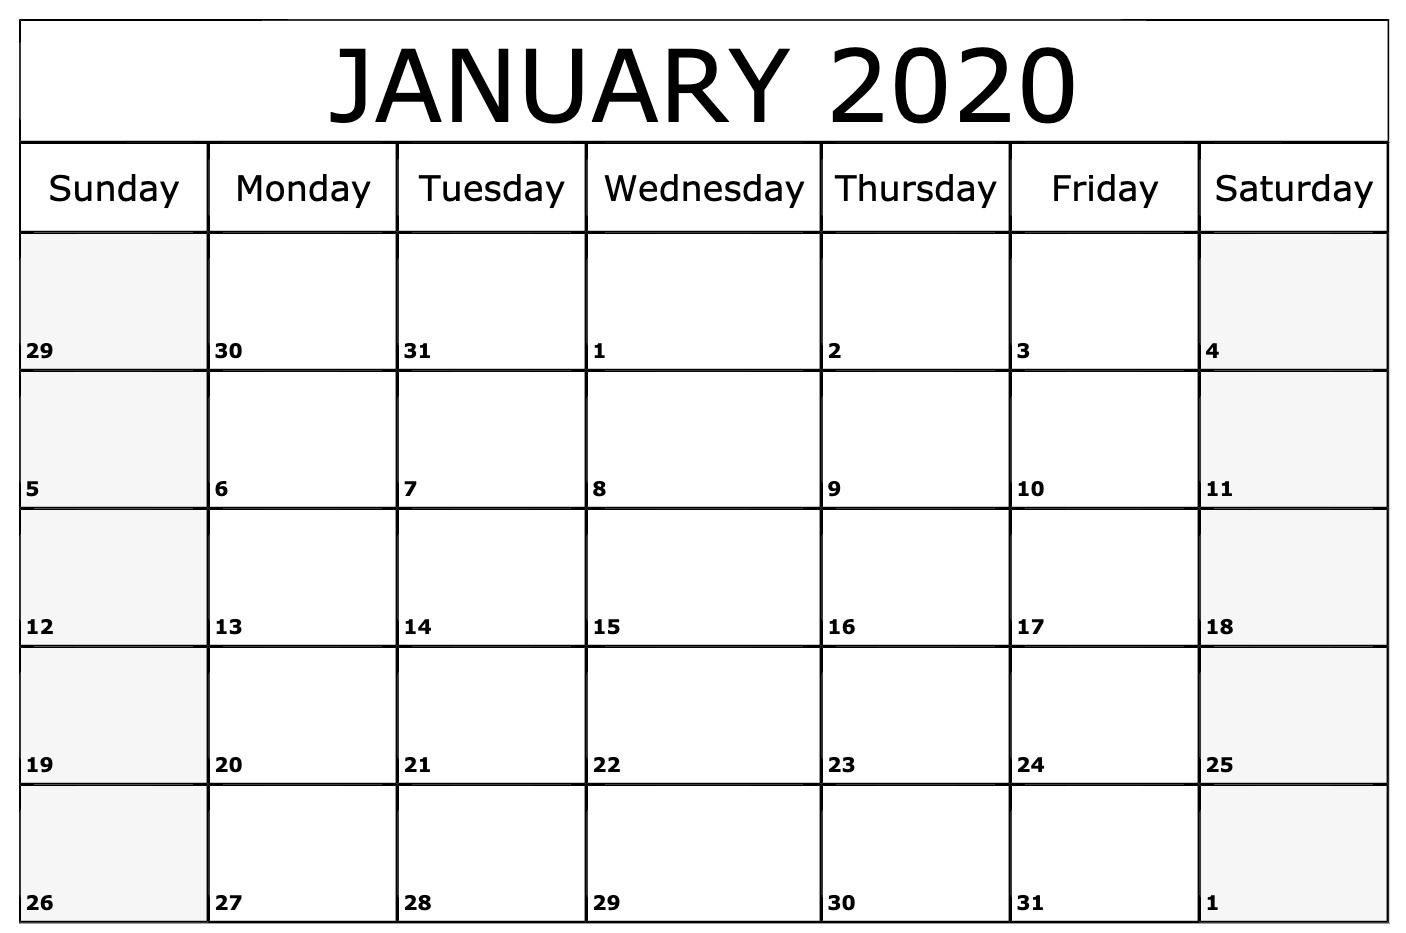 January 2020 Calendar Printable Template | Printable